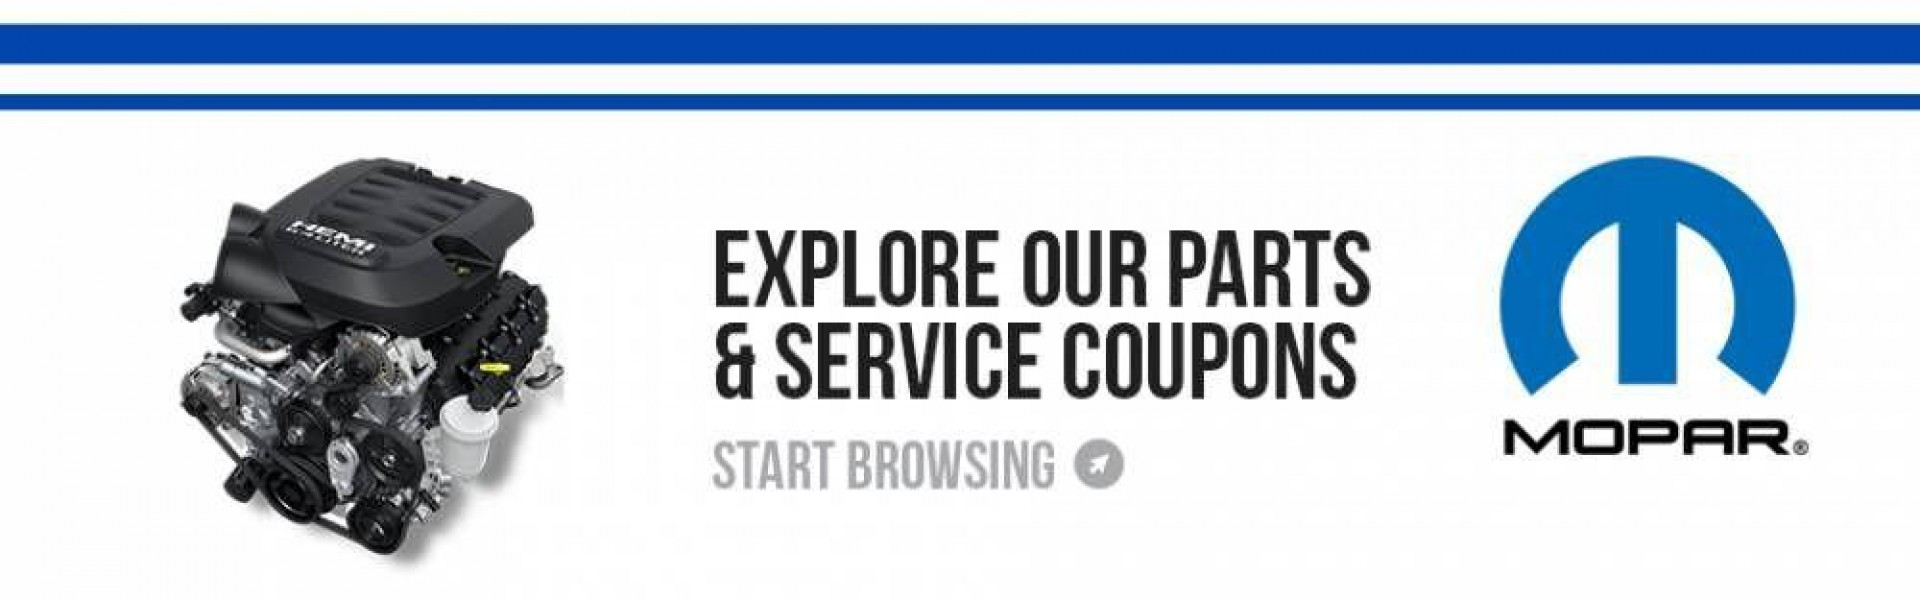 Mopar - Explore our Parts & Service Coupons